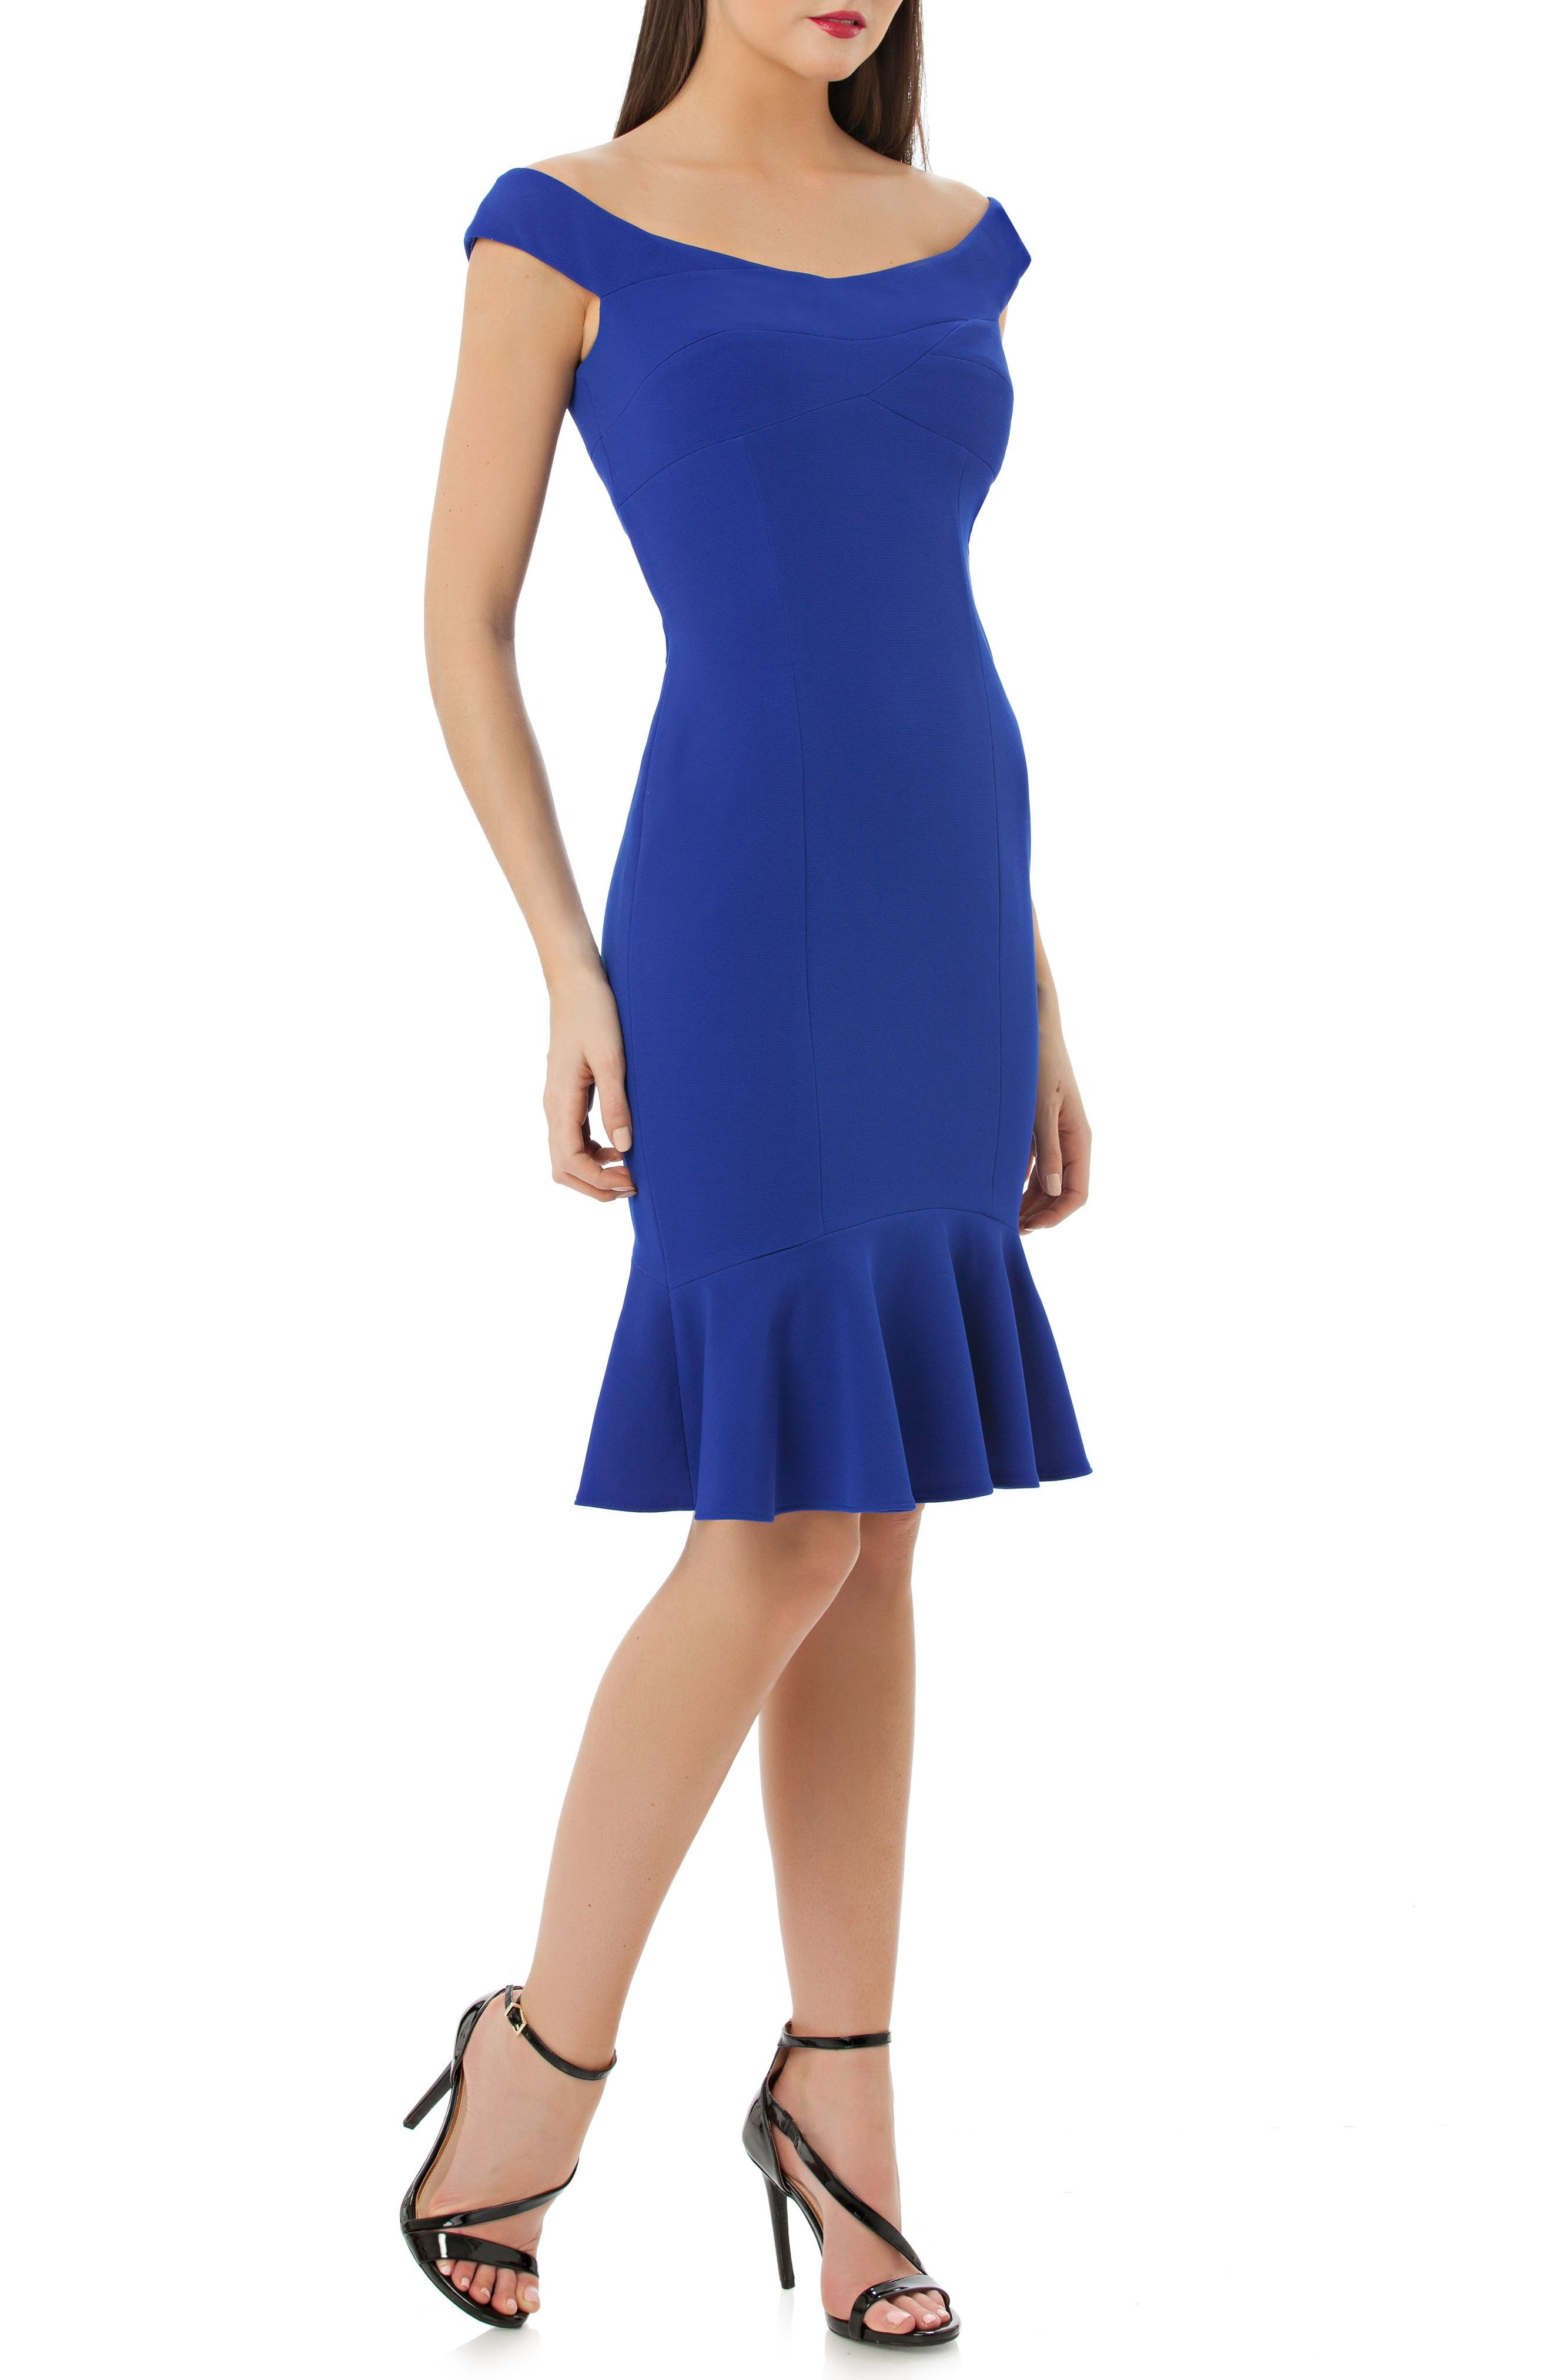 Off the Shoulder Cocktail Dress,                             Main thumbnail 1, color,                             Royal